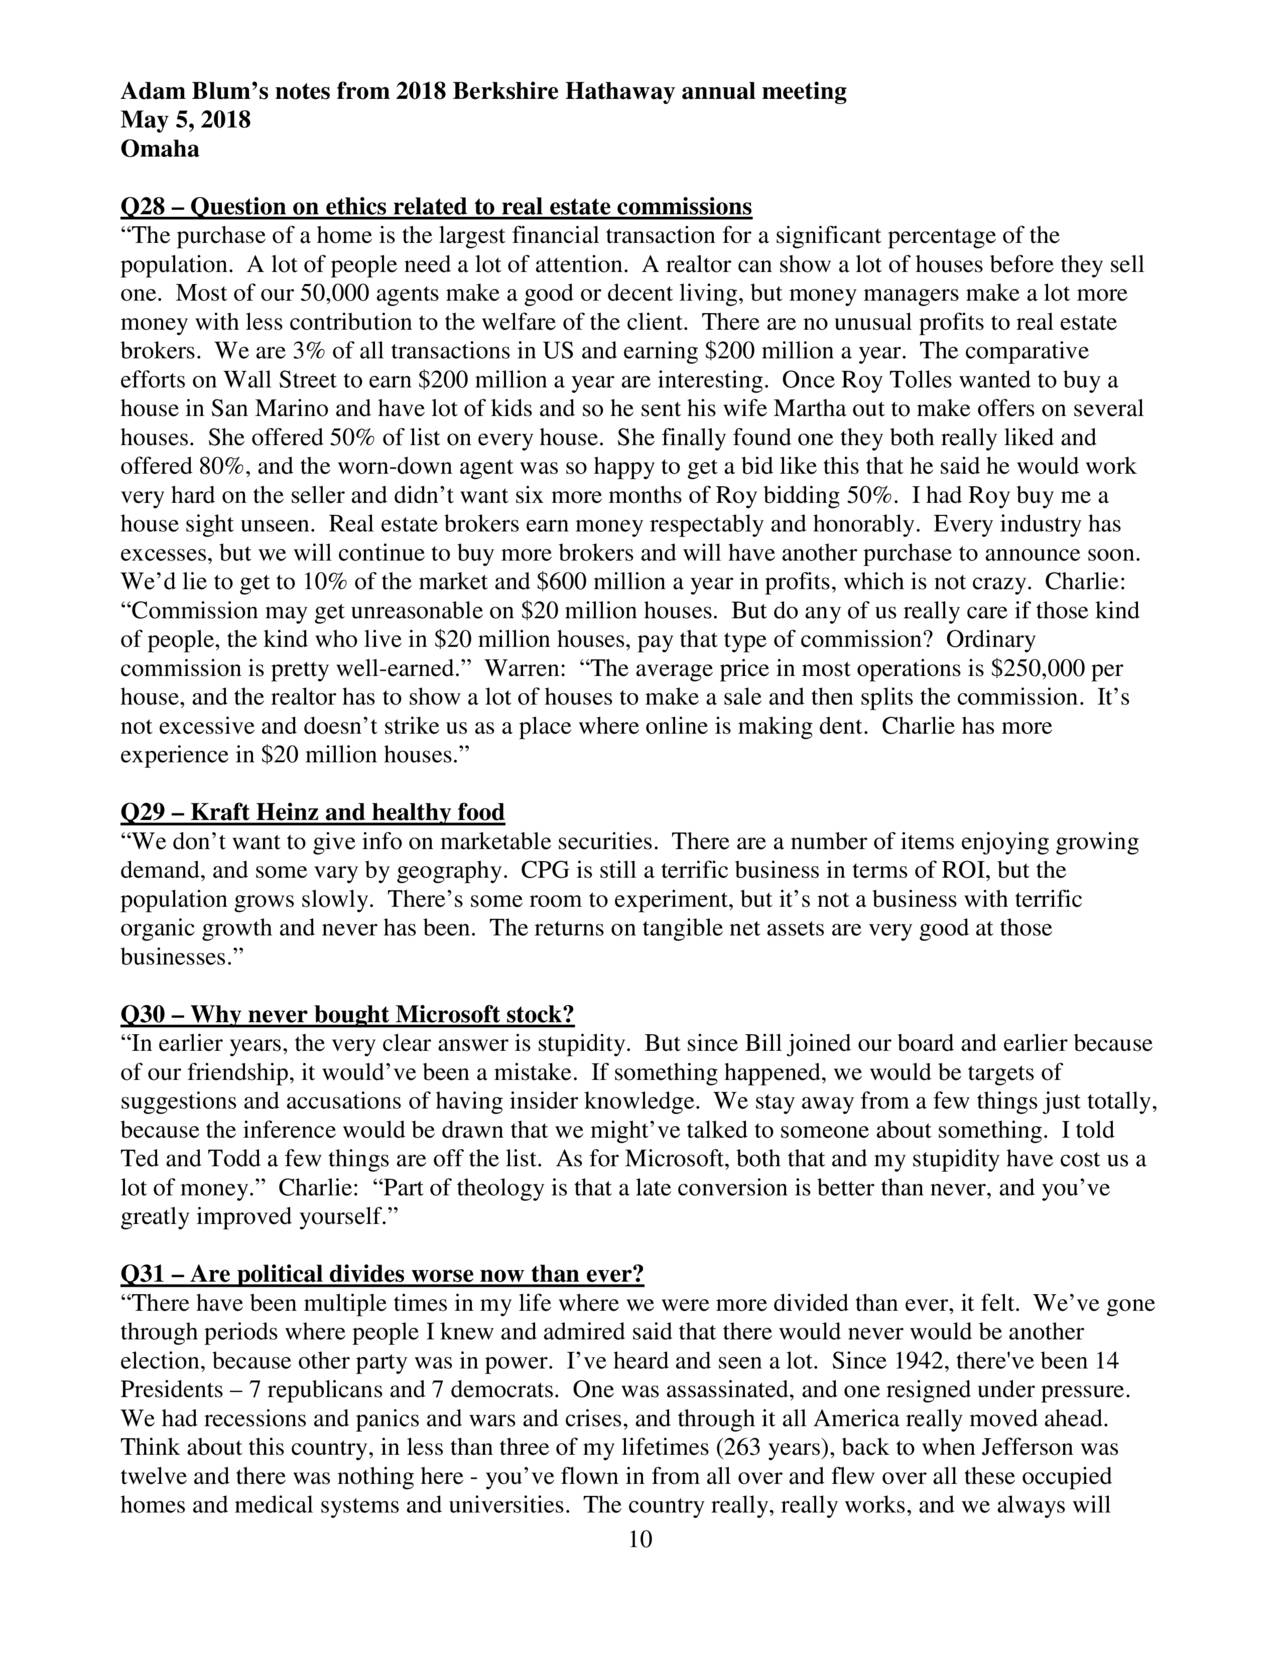 Berkshire Hathaway 2018 Annual Meeting - In-Depth Notes ...